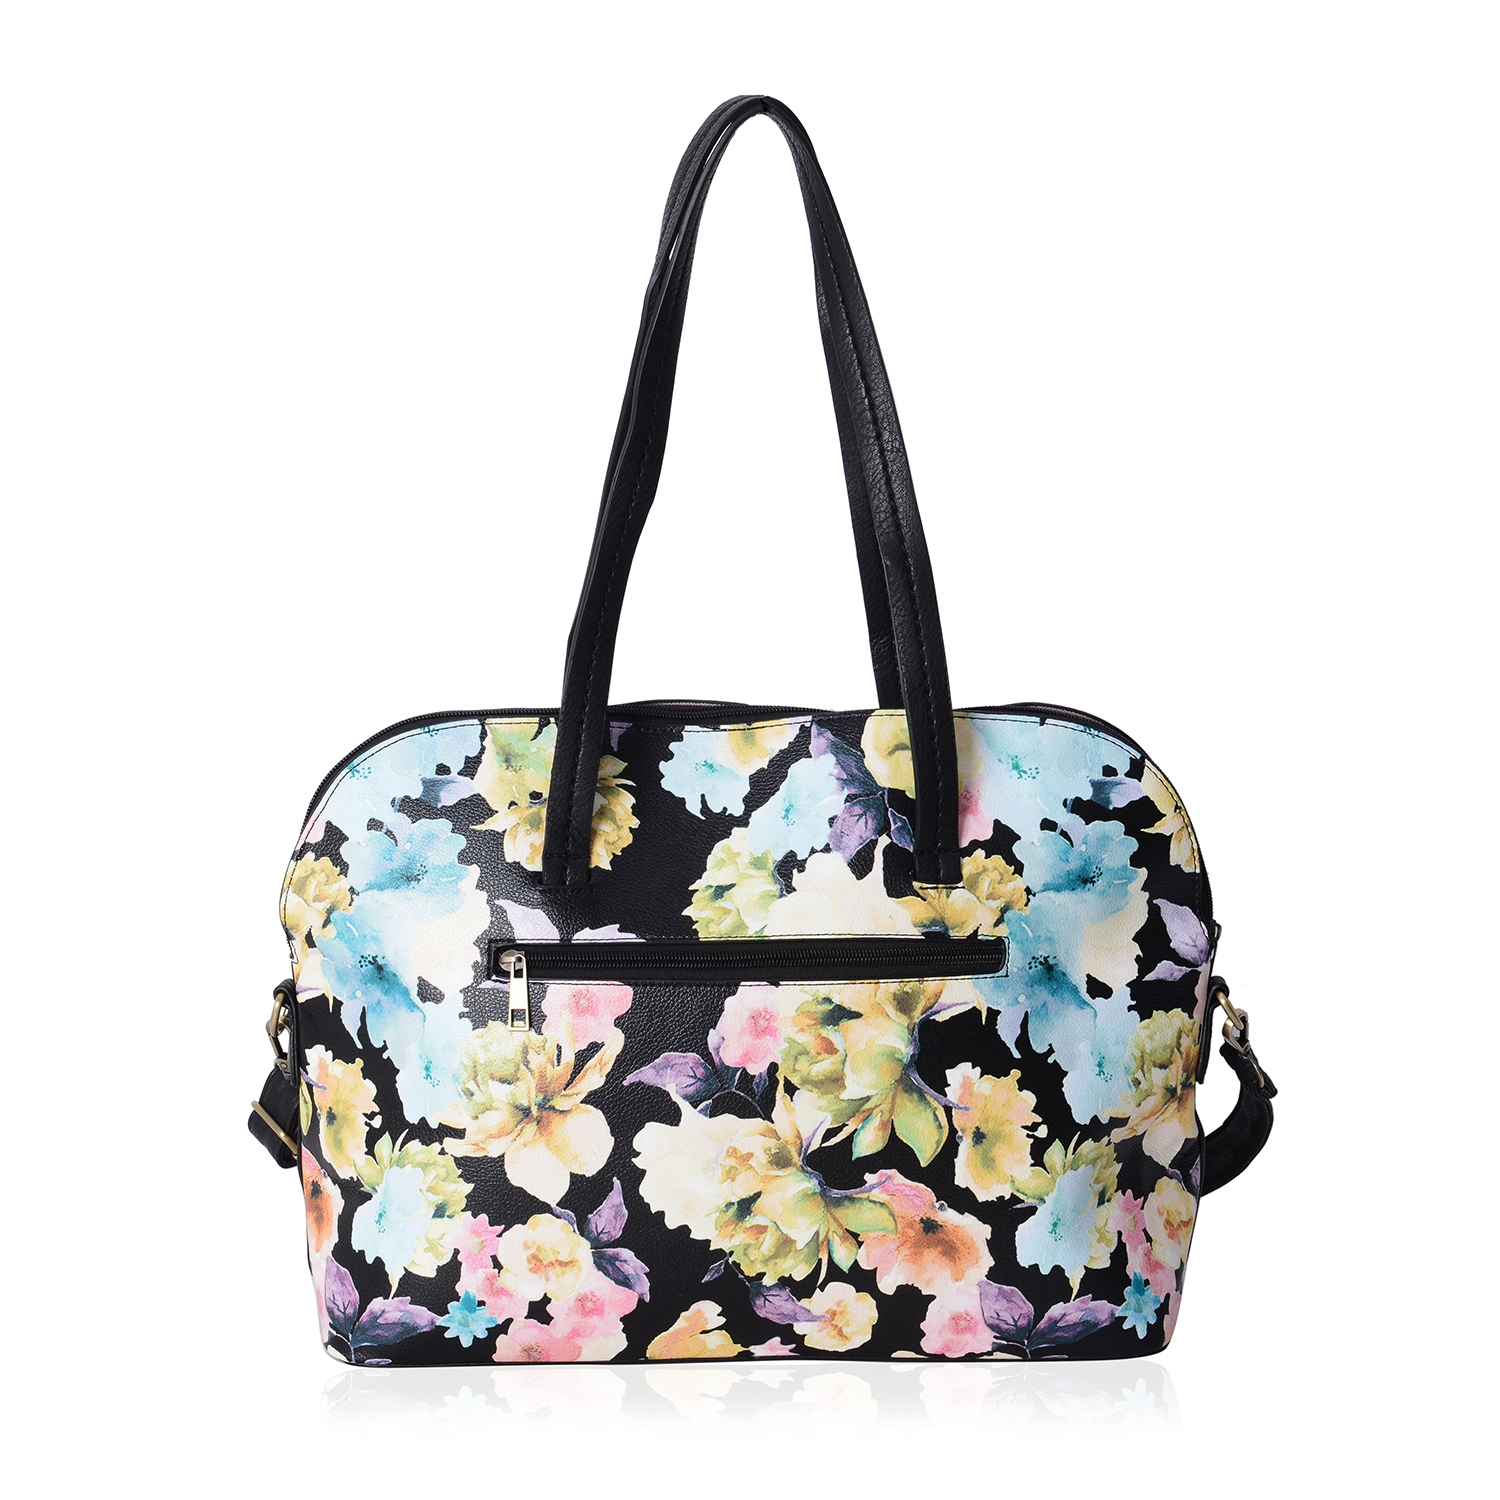 ... Black with Multi Color Flower Pattern Faux Leather Bowling Bag with  Removable Shoulder Strap (17x5x12 ... a622aa7bfe377